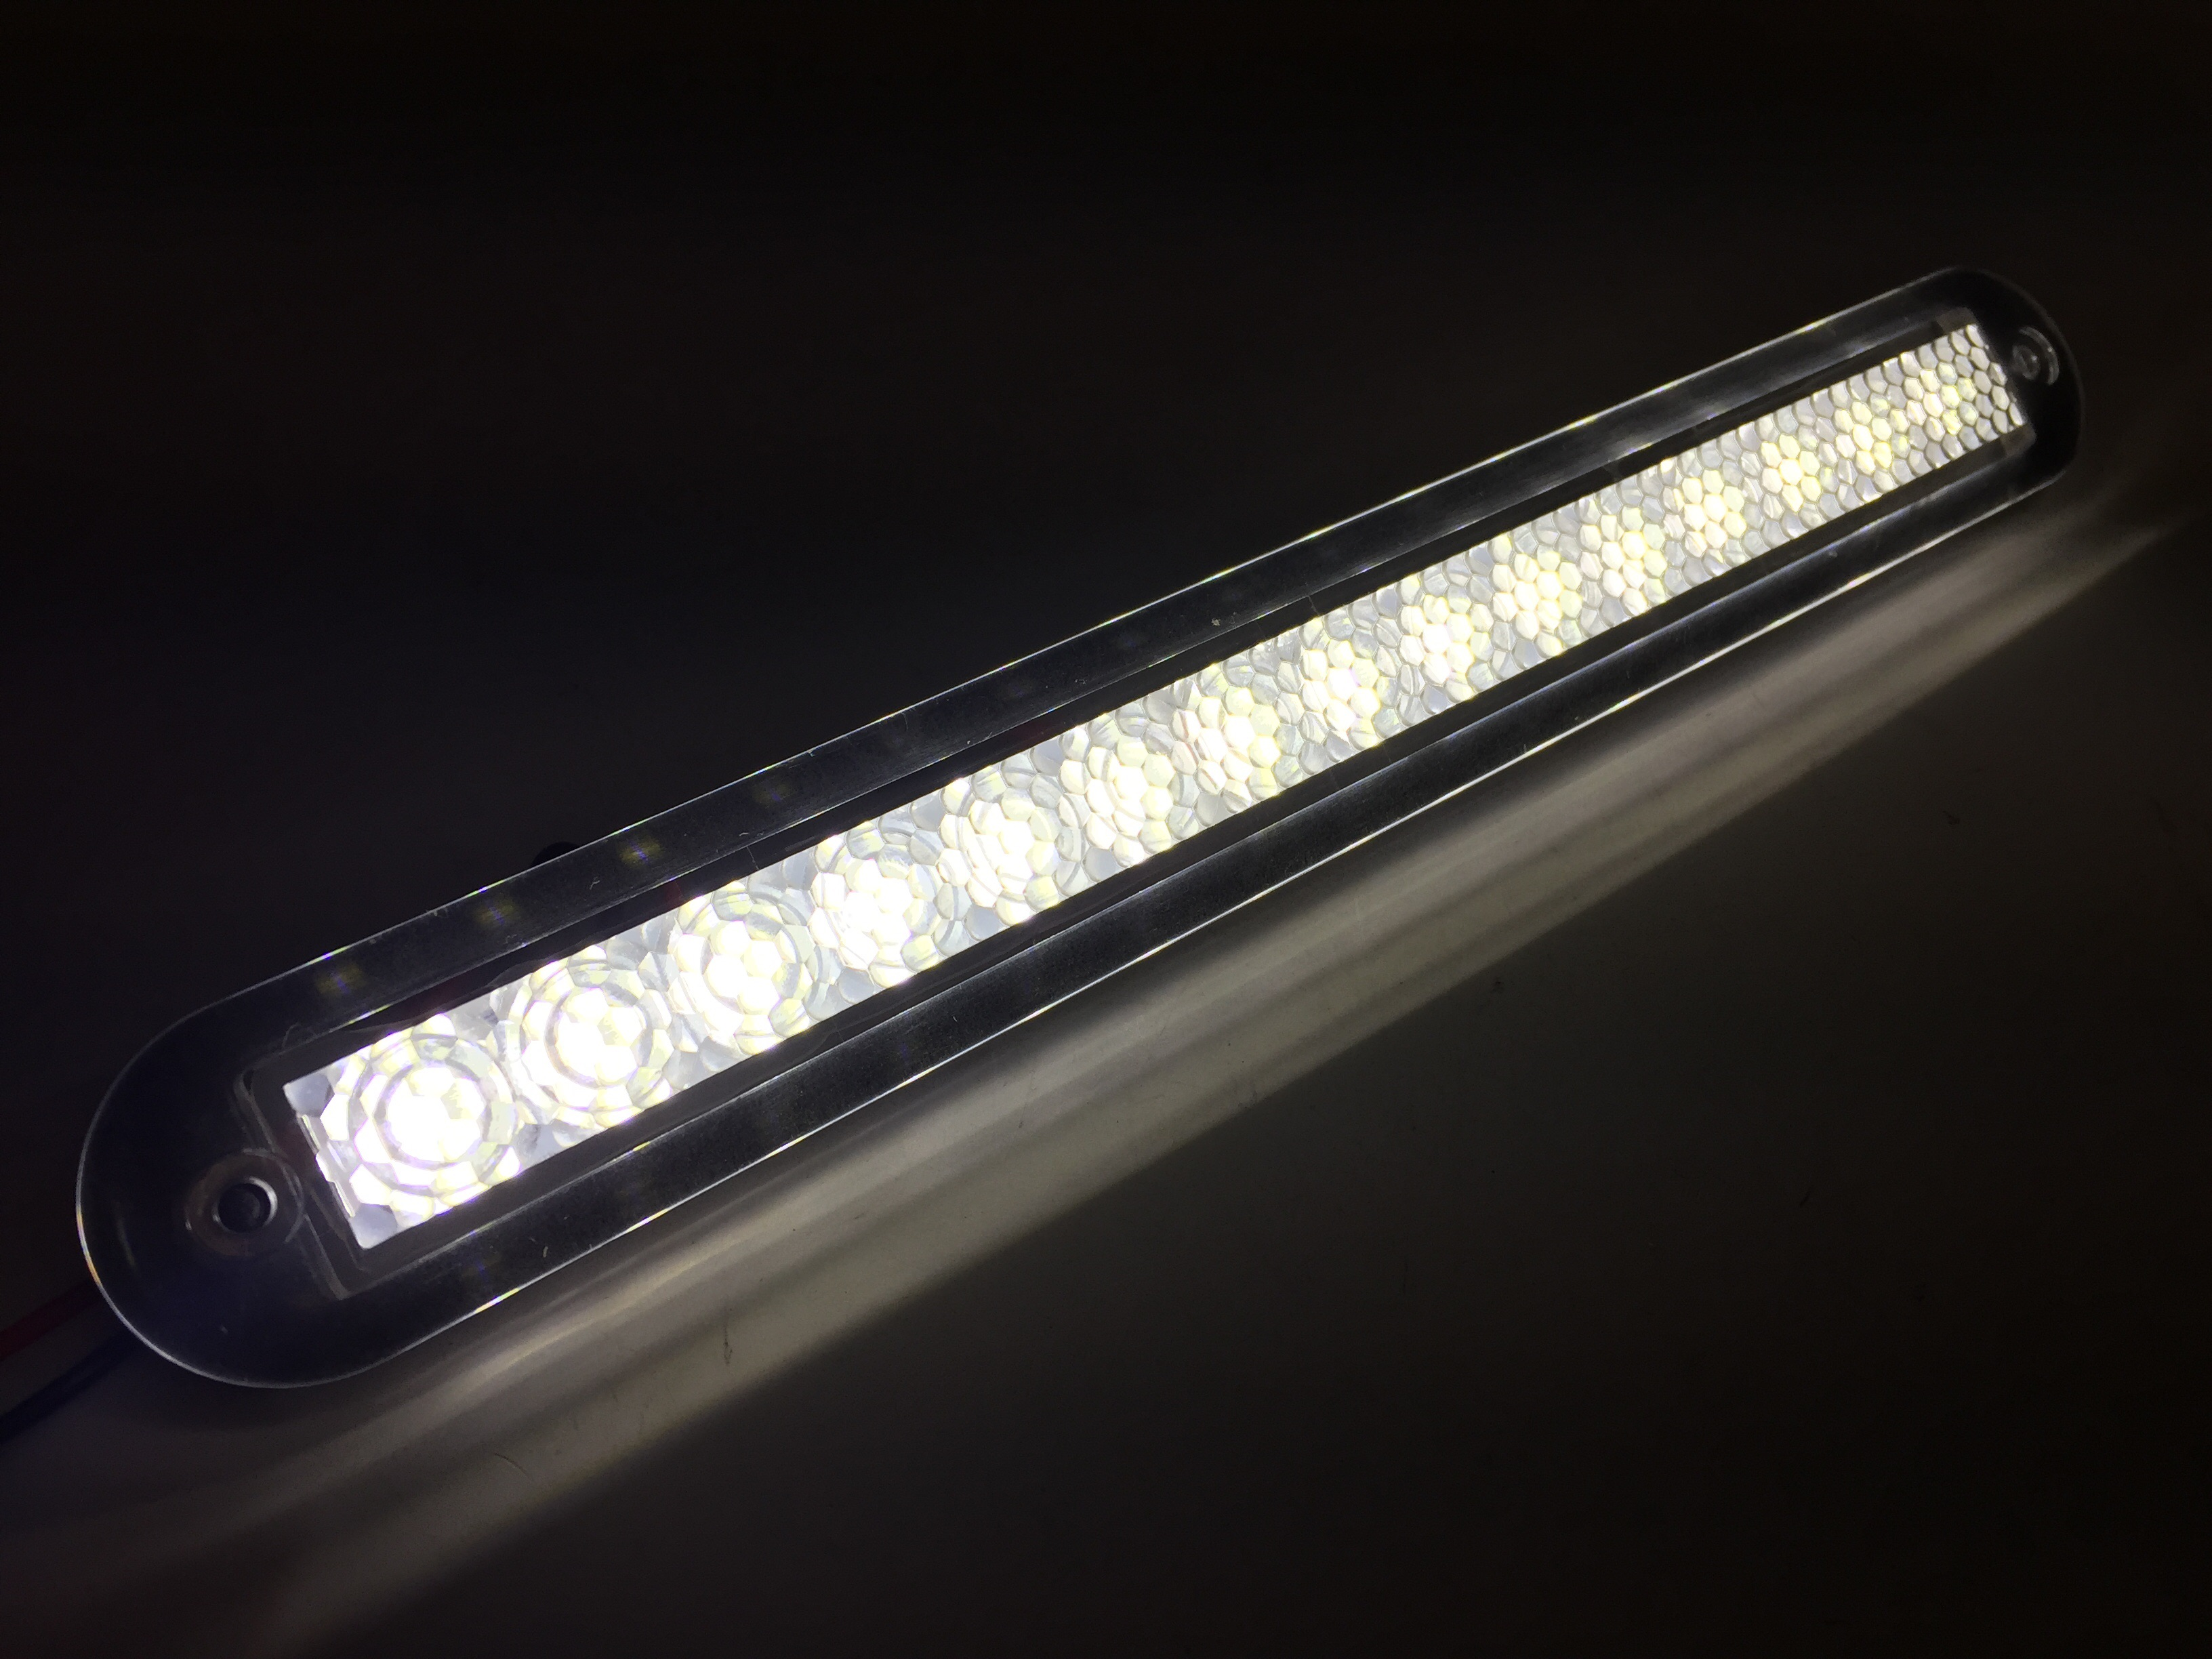 Marine boat white led strip light 176lm flush mount 12v 3w ip67 marine boat white led strip light 176lm flush mount 12v 3w ip67 aloadofball Image collections